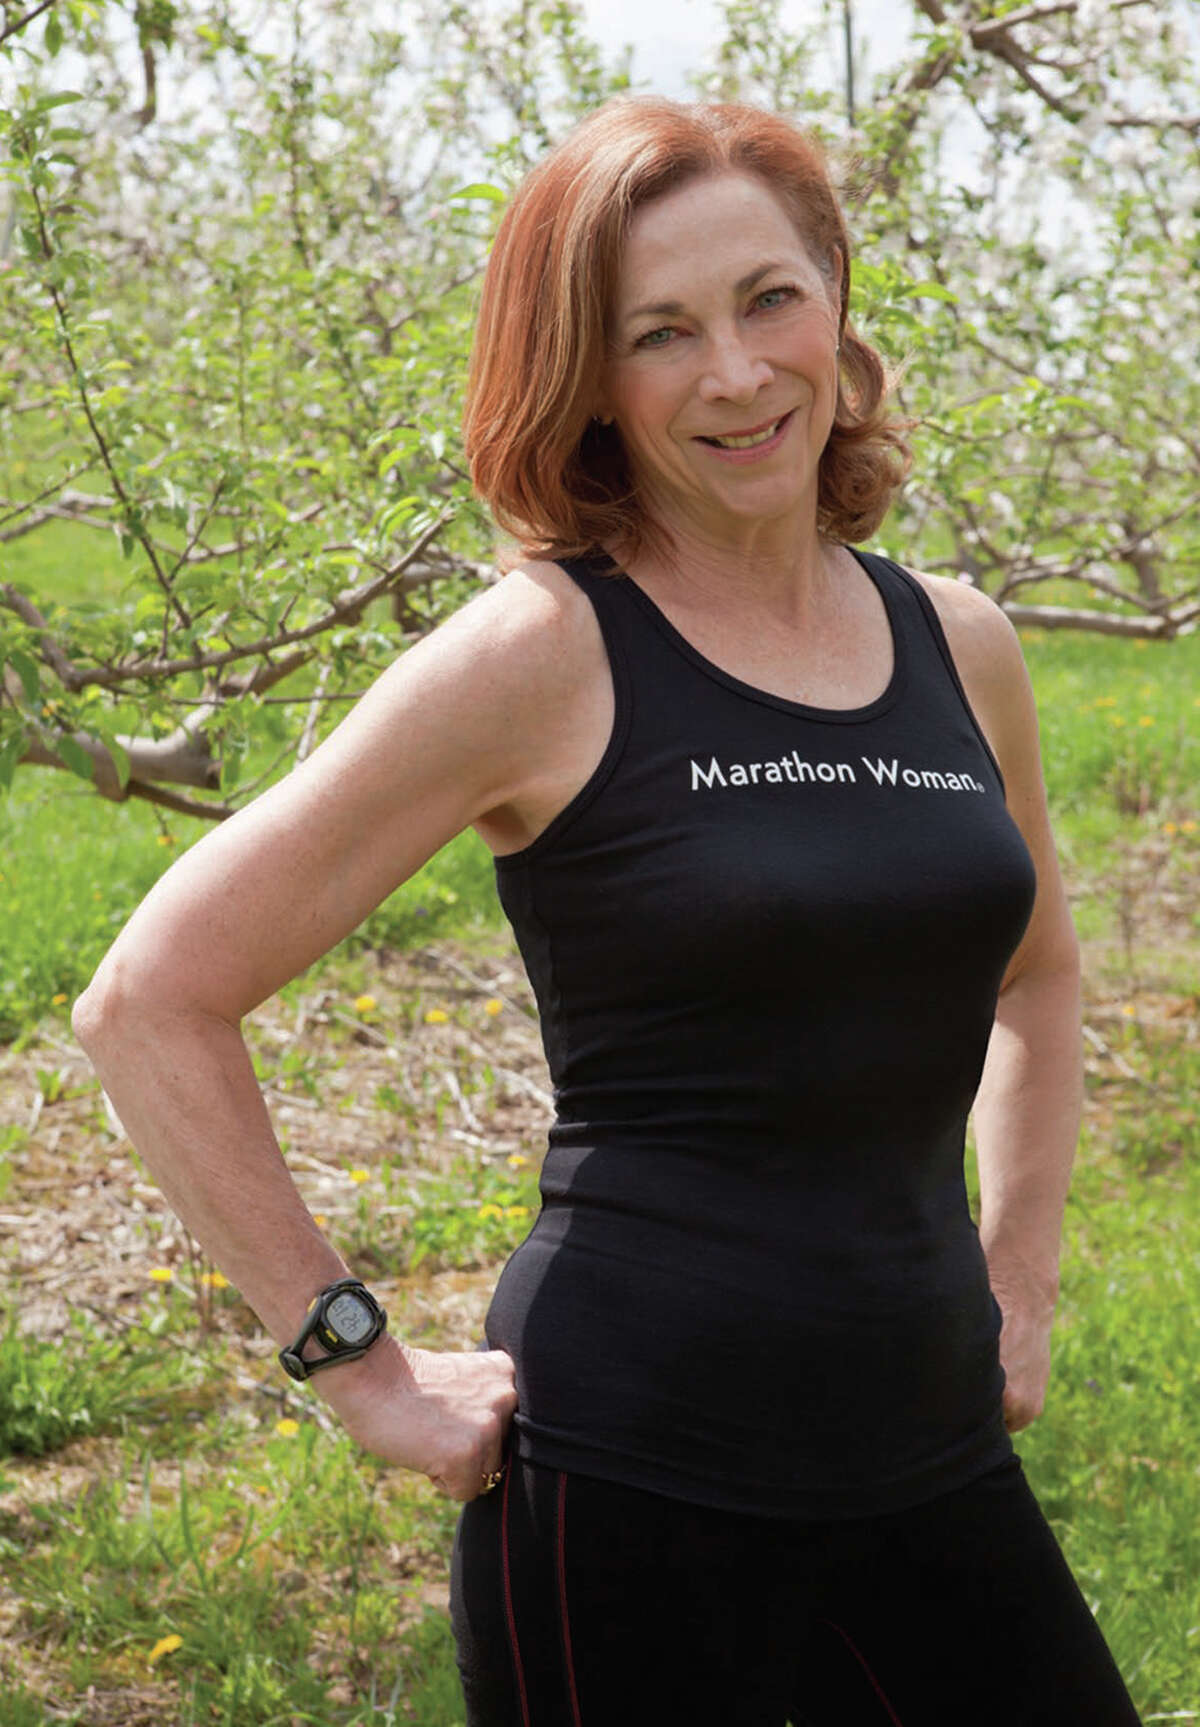 Kathrine Switzer, 64, has been a leader in women's opportunities since she was the first woman to officially run the Boston Marathon in 1967. She won the 1974 New York City Marathon, is an Emmy award winning TV commentator and the author of several books.